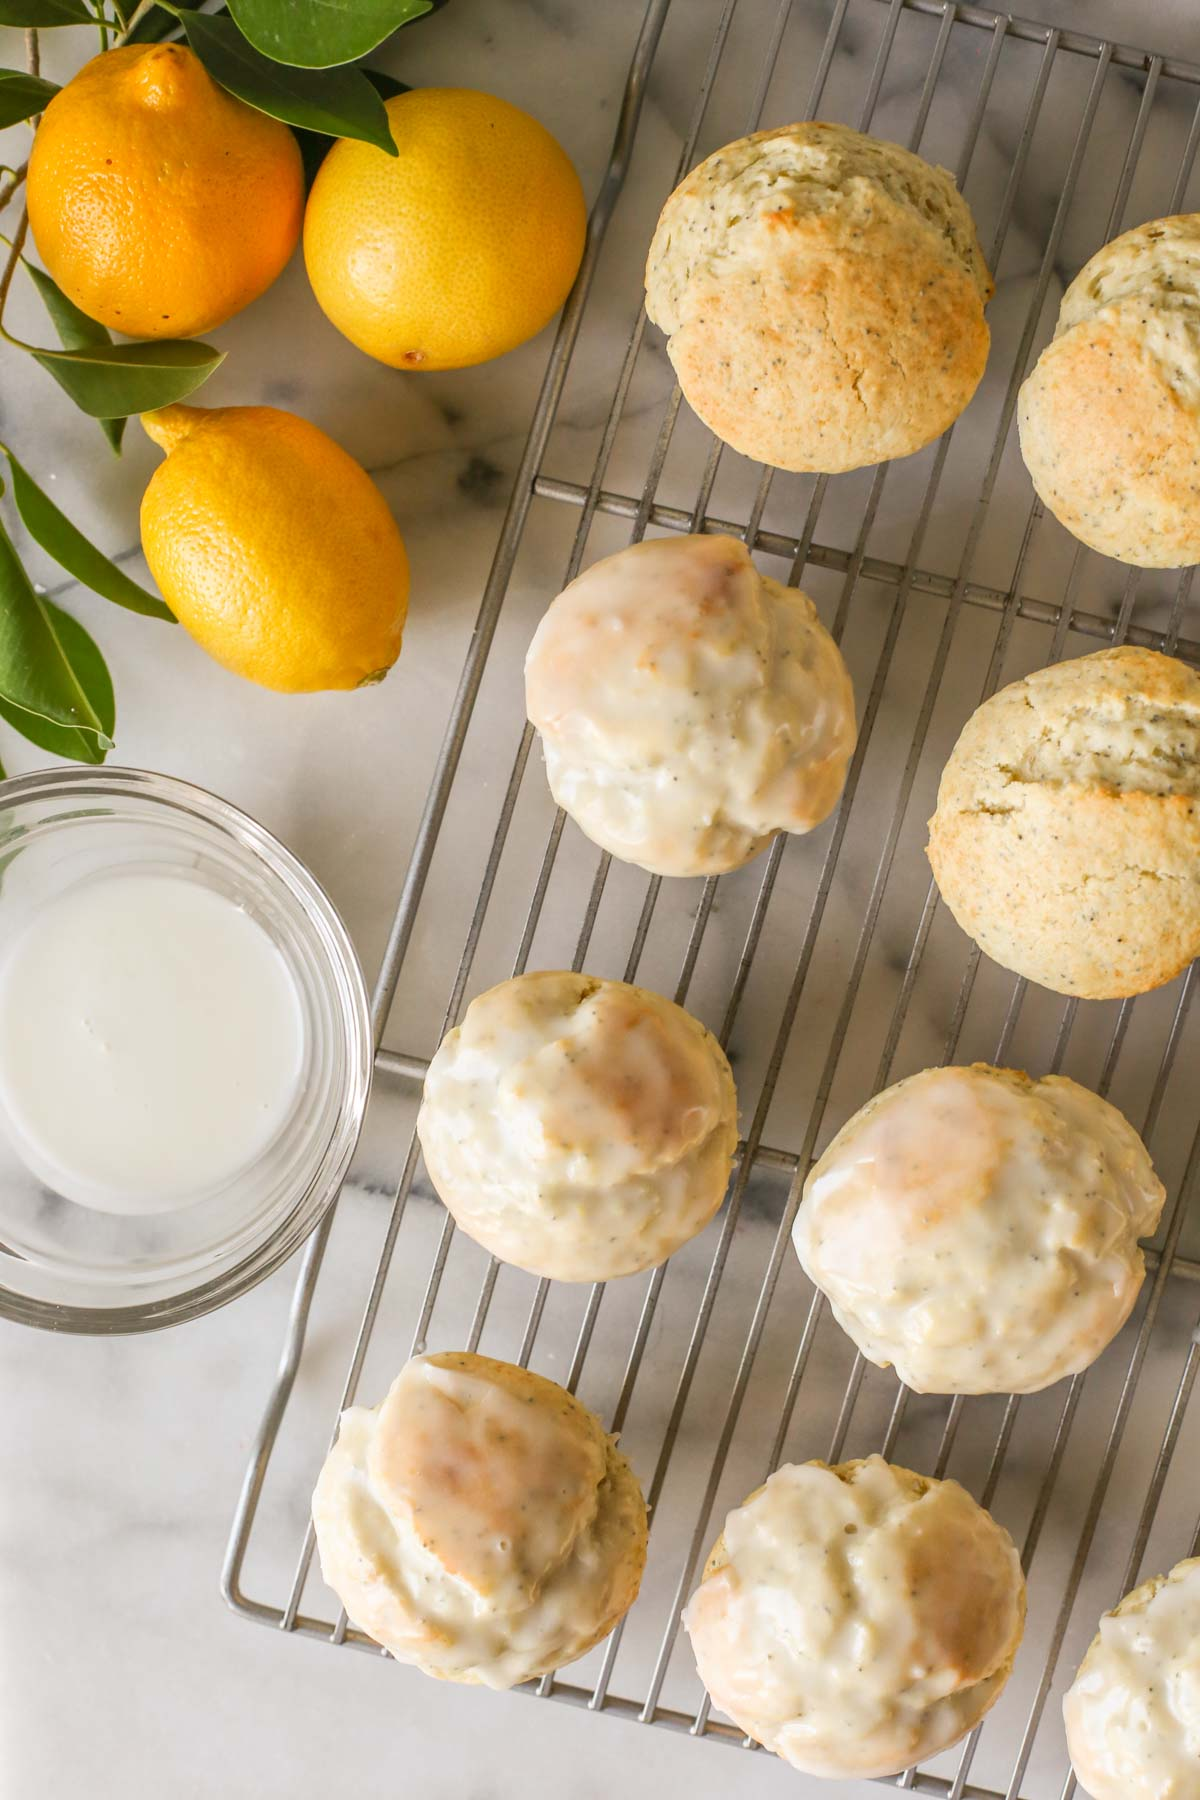 Overhead shot of Lemon Poppy Seed Muffins on a cooling rack, some glazed and some not yet glazed, with a glass bowl of glaze next to the cooling rack, along with a branch from a lemon tree and three whole lemons.